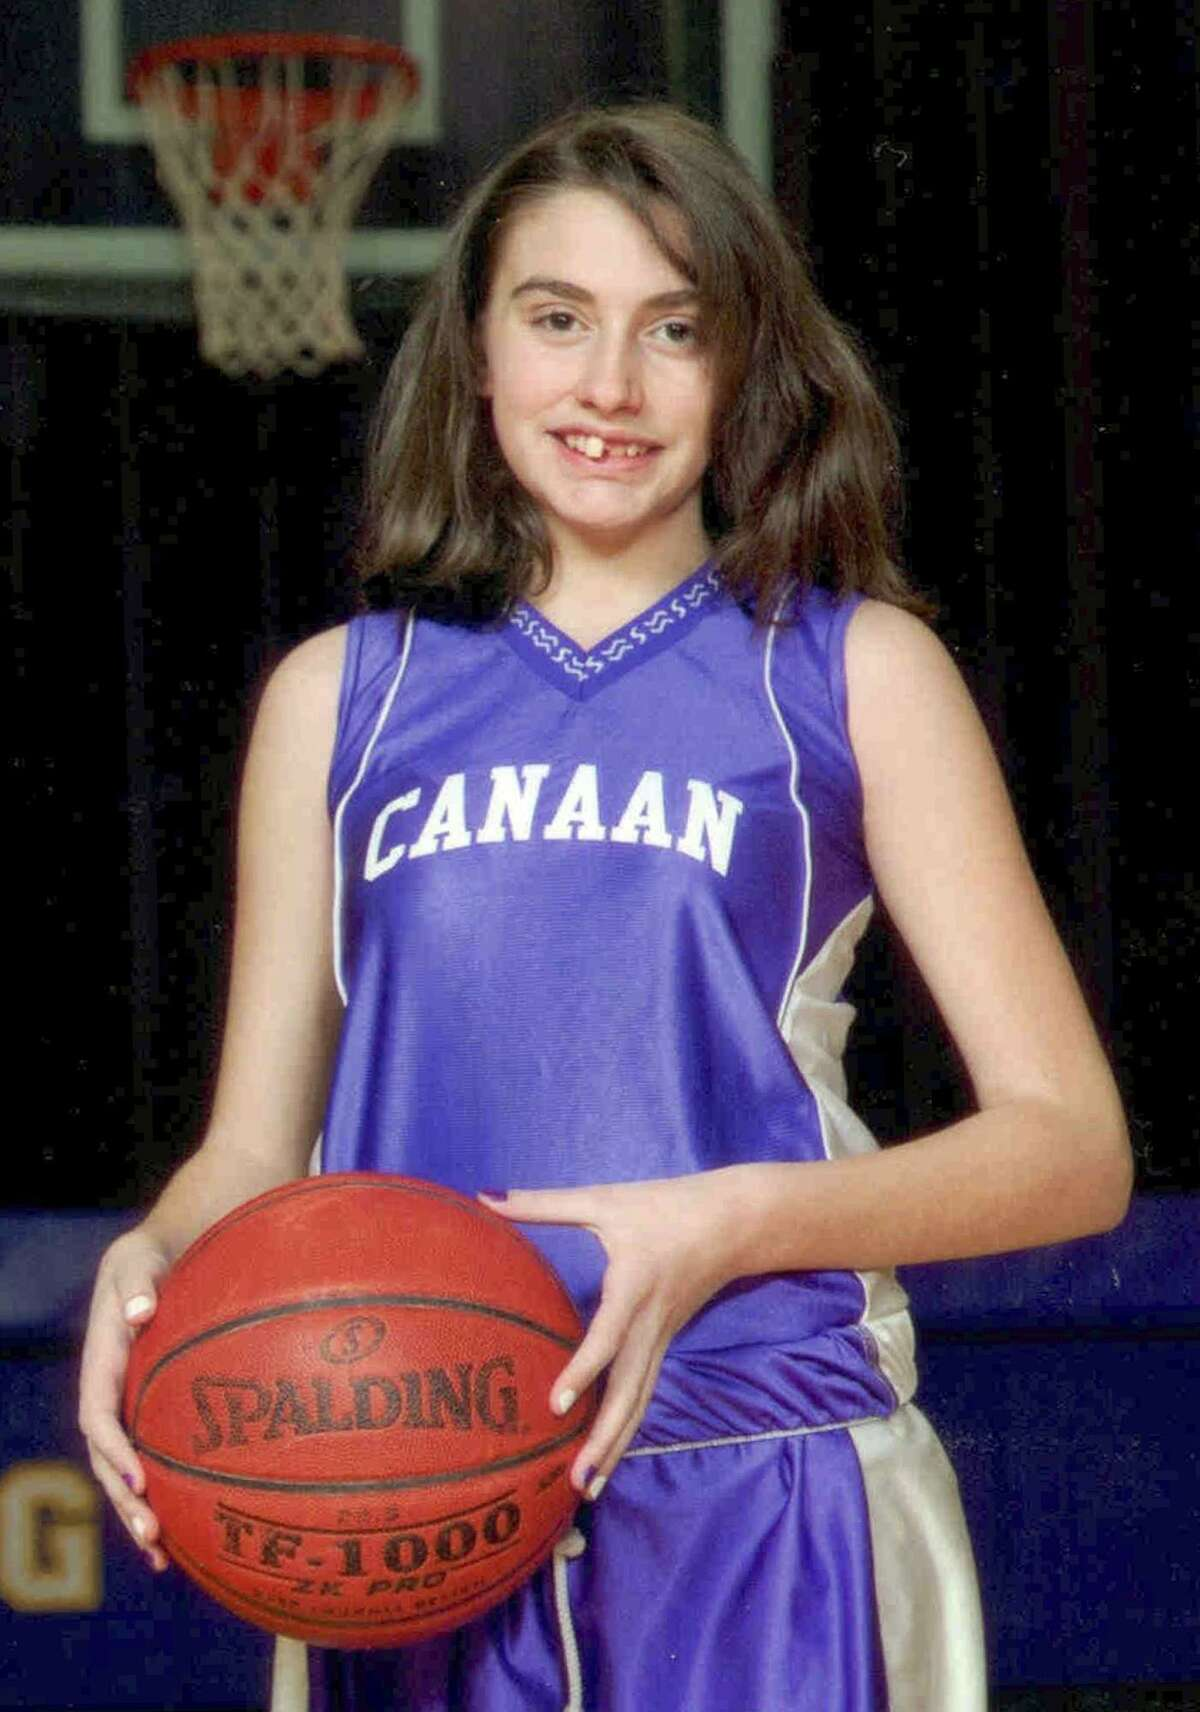 This 2010 photo provided by the New Hampshire State Police shows Celina Cass of West Stewartstown, N.H., in a basketball team uniform in Canann, Vt. Law enforcement officials are searching for Cass, who they say was last seen at her home the night of Monday, July 25, 2011. (AP Photo/Don Whipple)